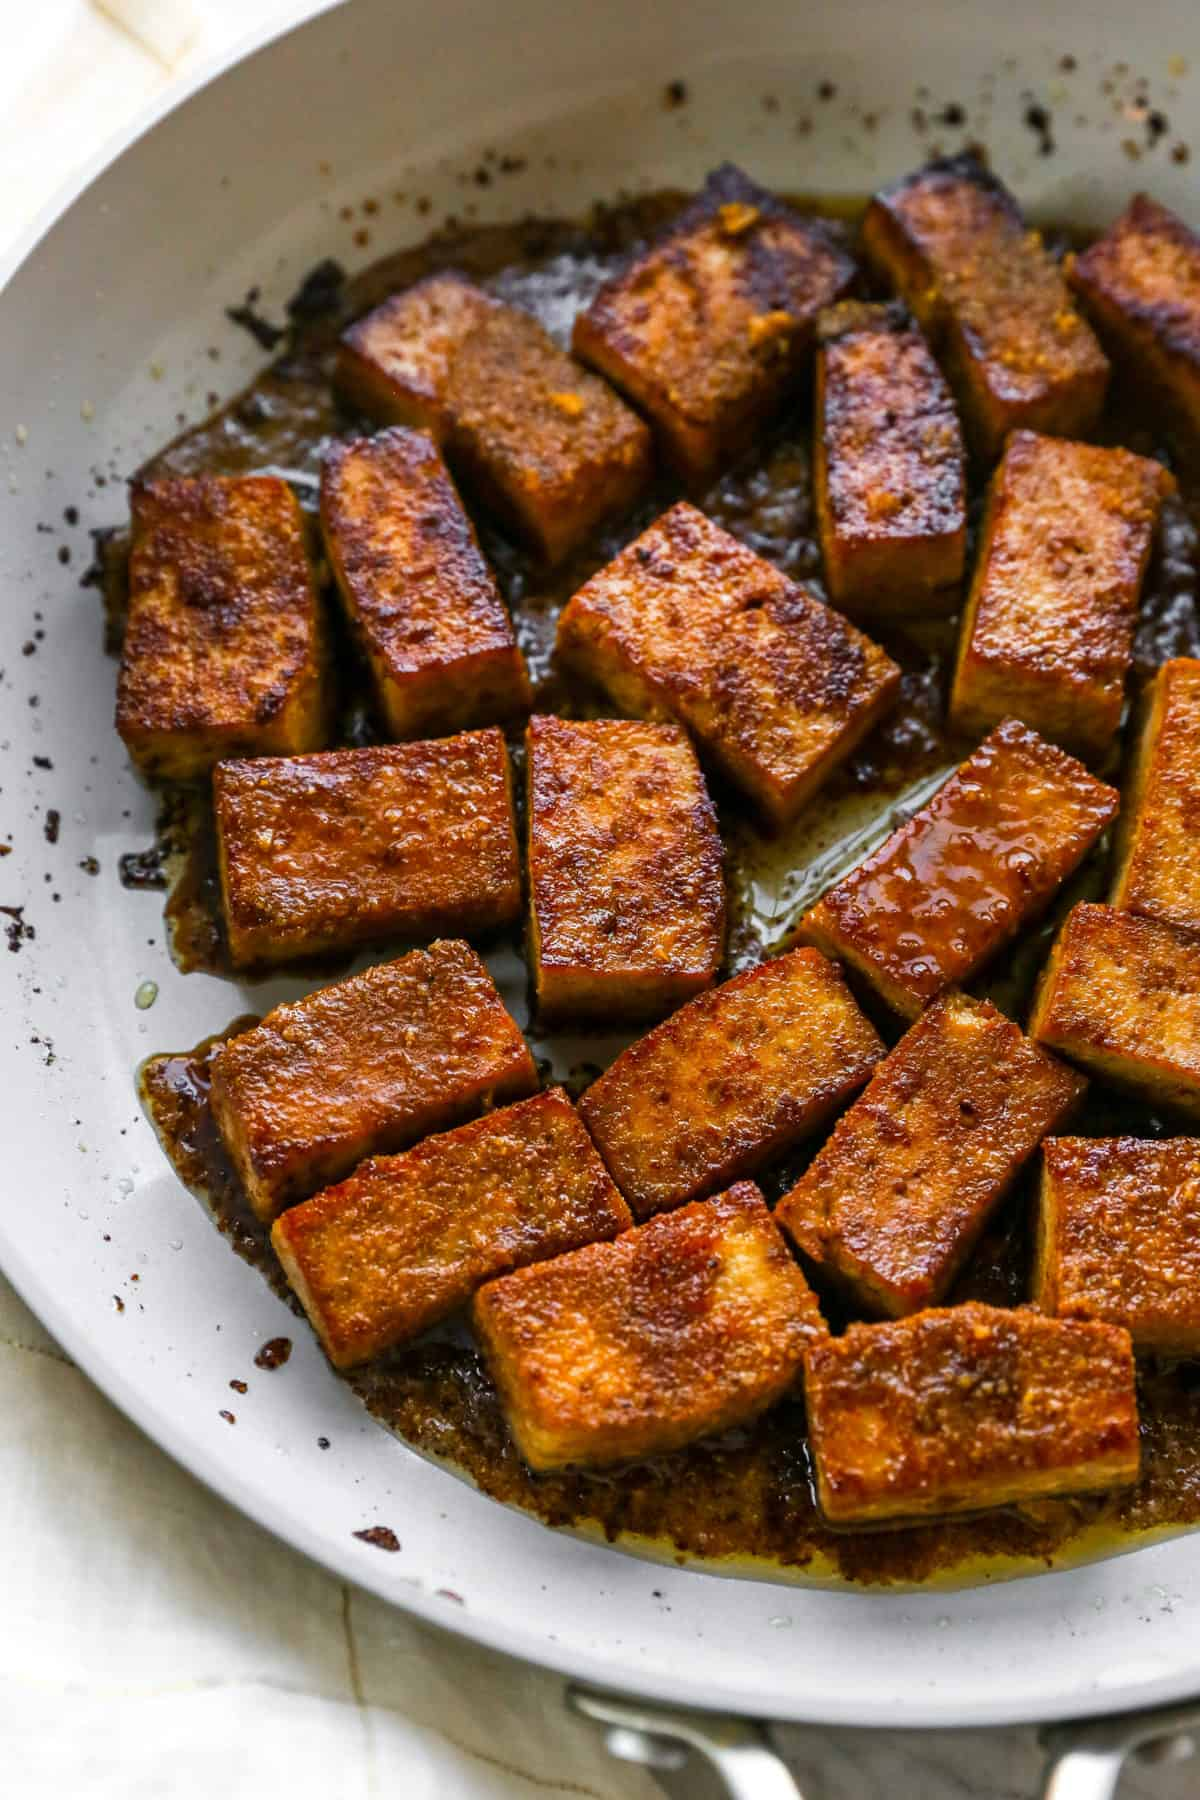 marinated and cooked tofu with leftover sauce in pan